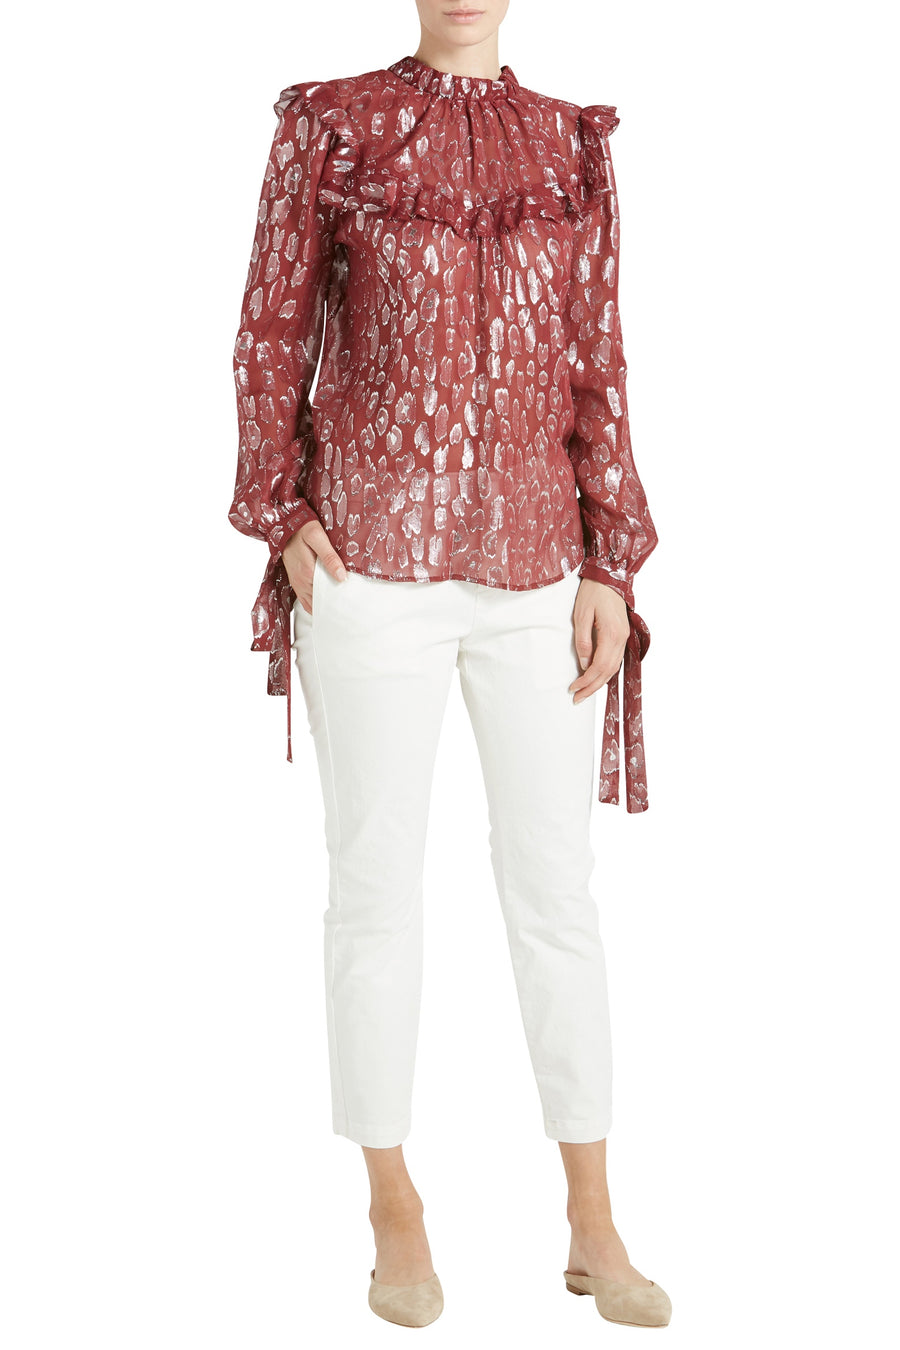 BROOKS RUFFLE BLOUSE